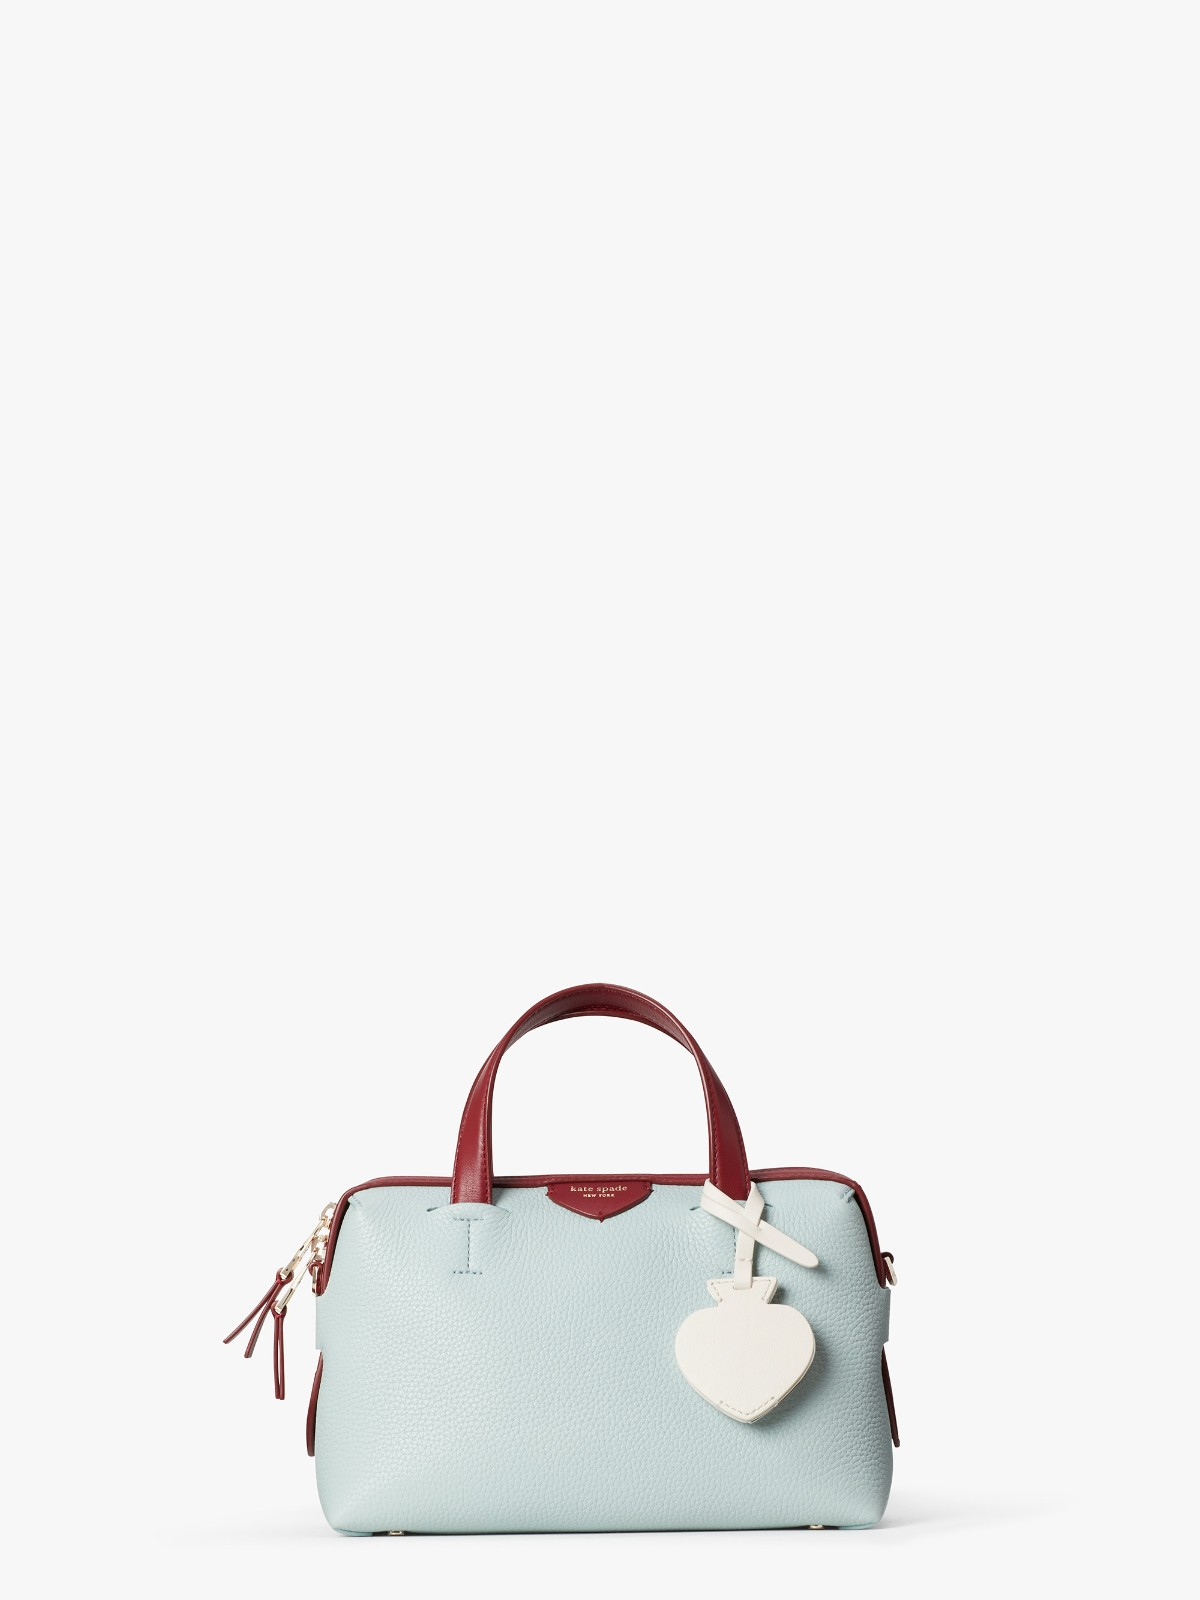 taffie small satchel